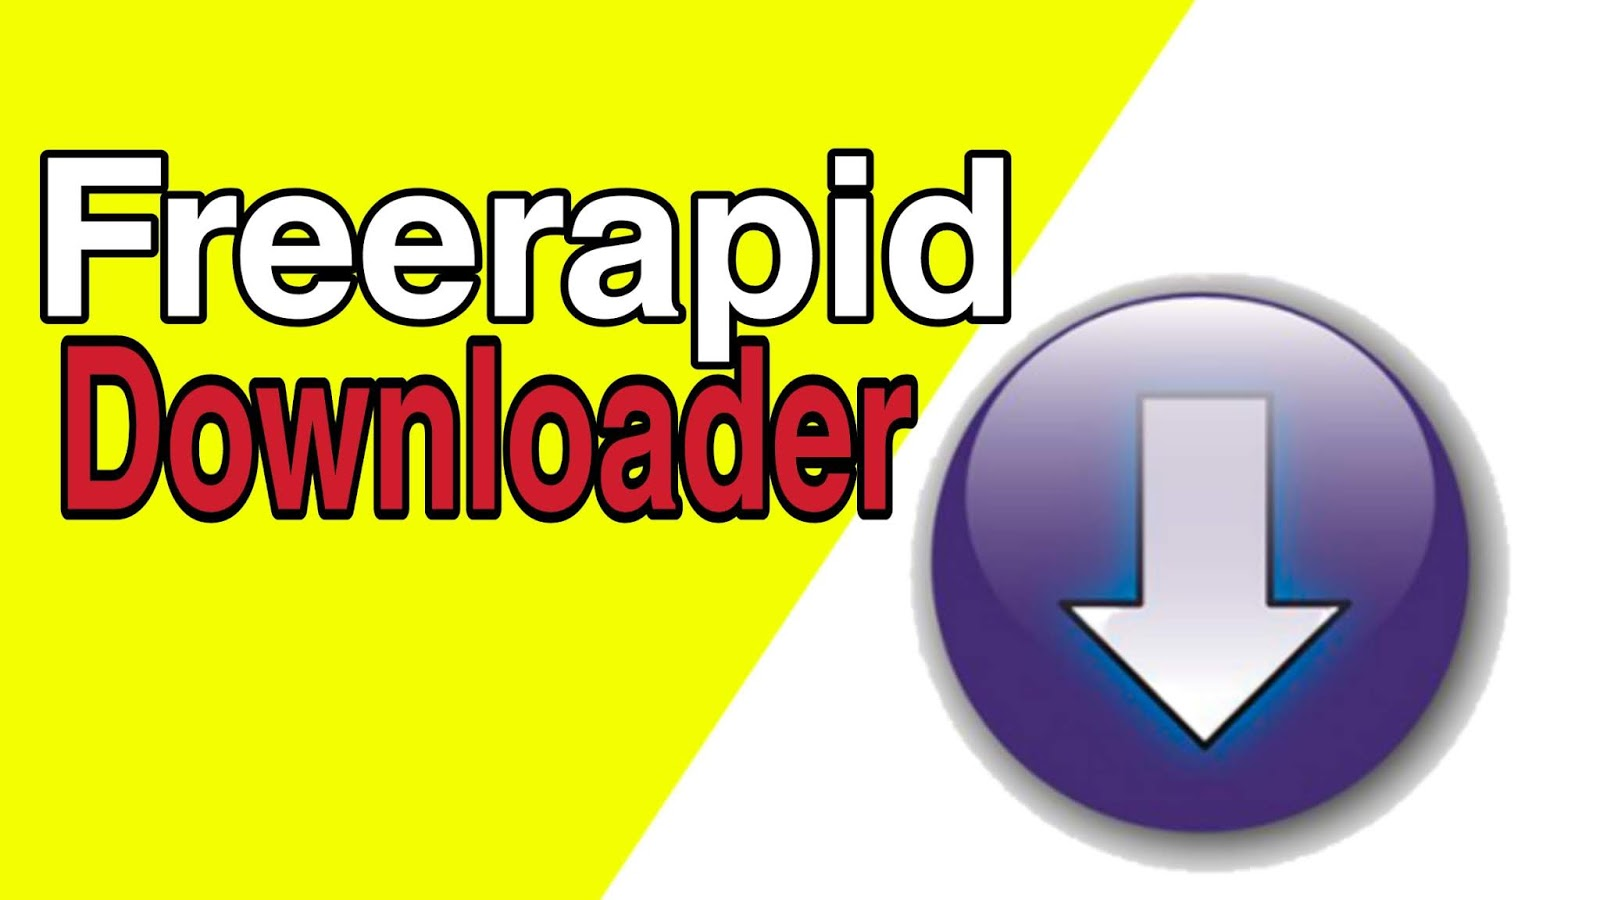 Free Rapid Downloader